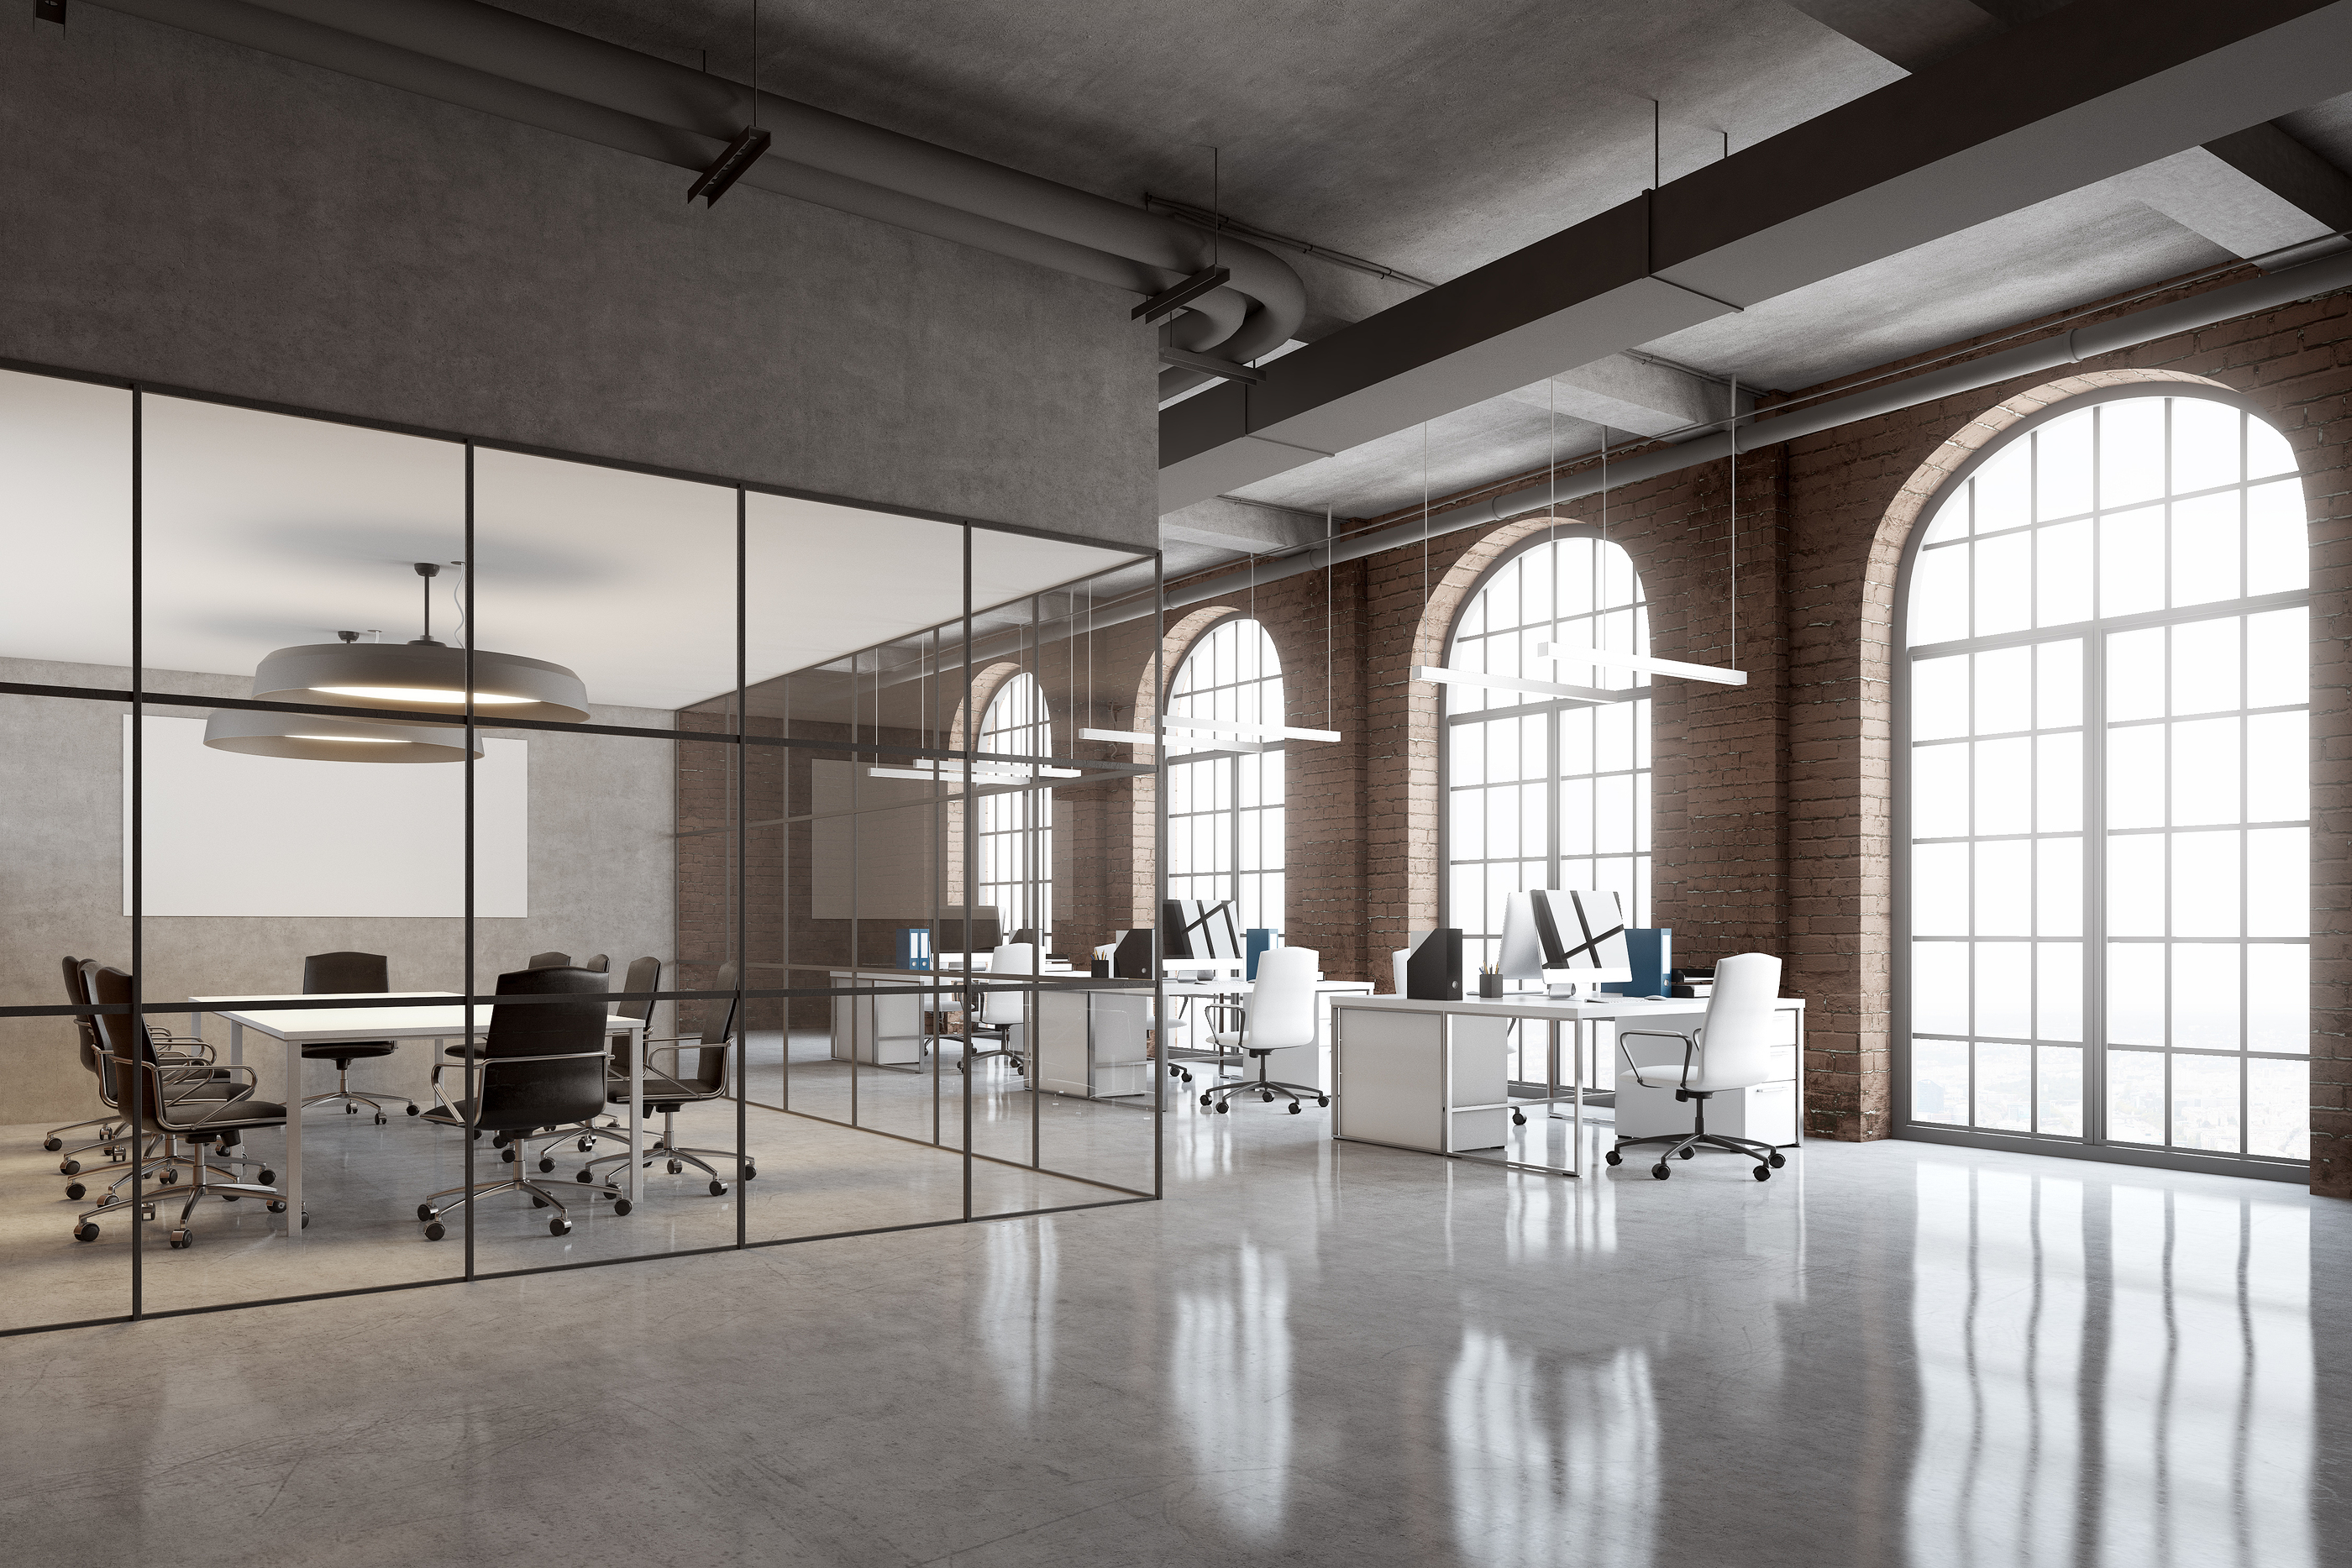 Office and building commercial cleaning of a modern open workplace in an with vinyl floors and glass doors